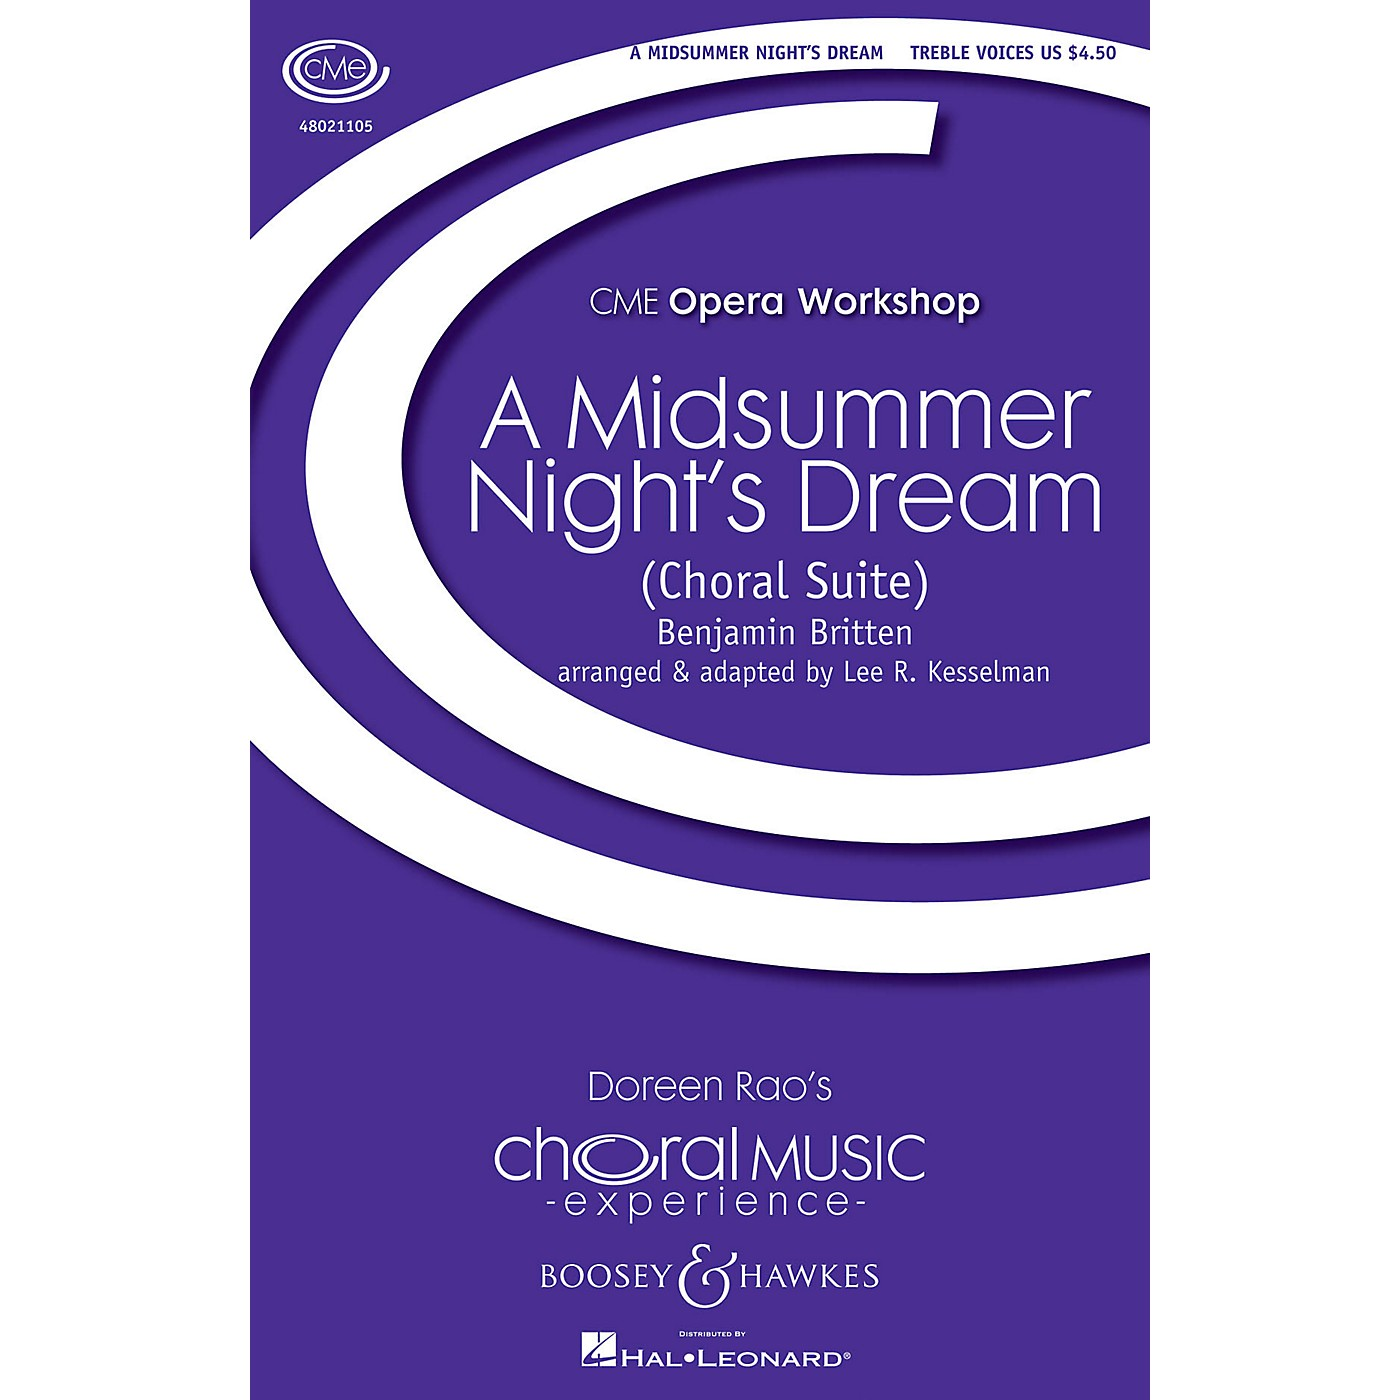 Boosey and Hawkes A Midsummer Night's Dream - A Choral Suite (CME Opera Workshop) Treble Voices arranged by Lee Kesselman thumbnail